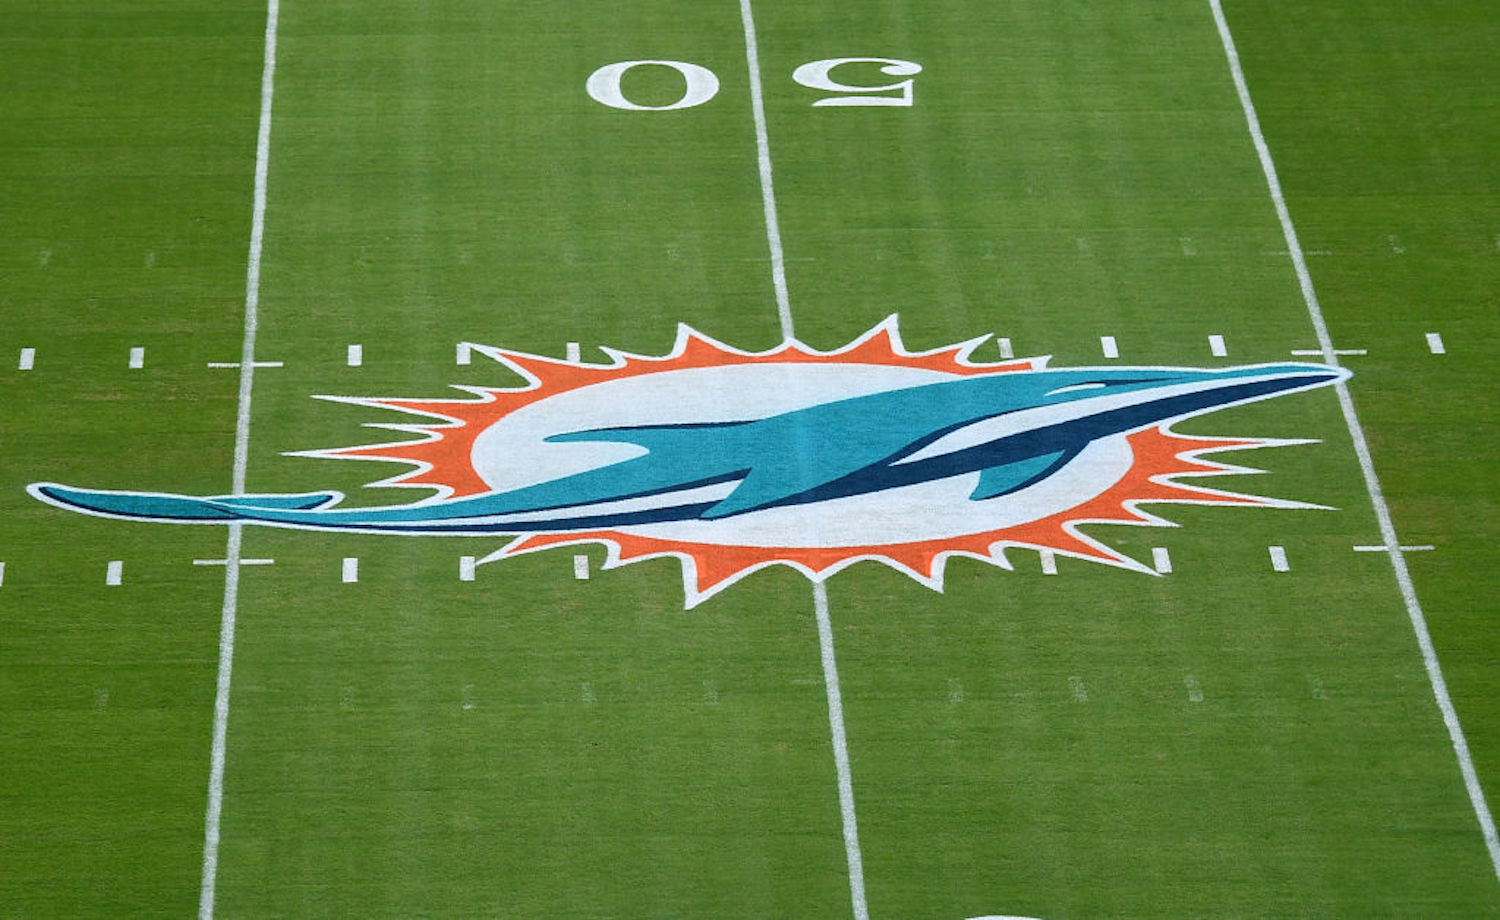 The Miami Dolphins are off to a great start this season, and now the organization is making a historic contribution to cancer research.